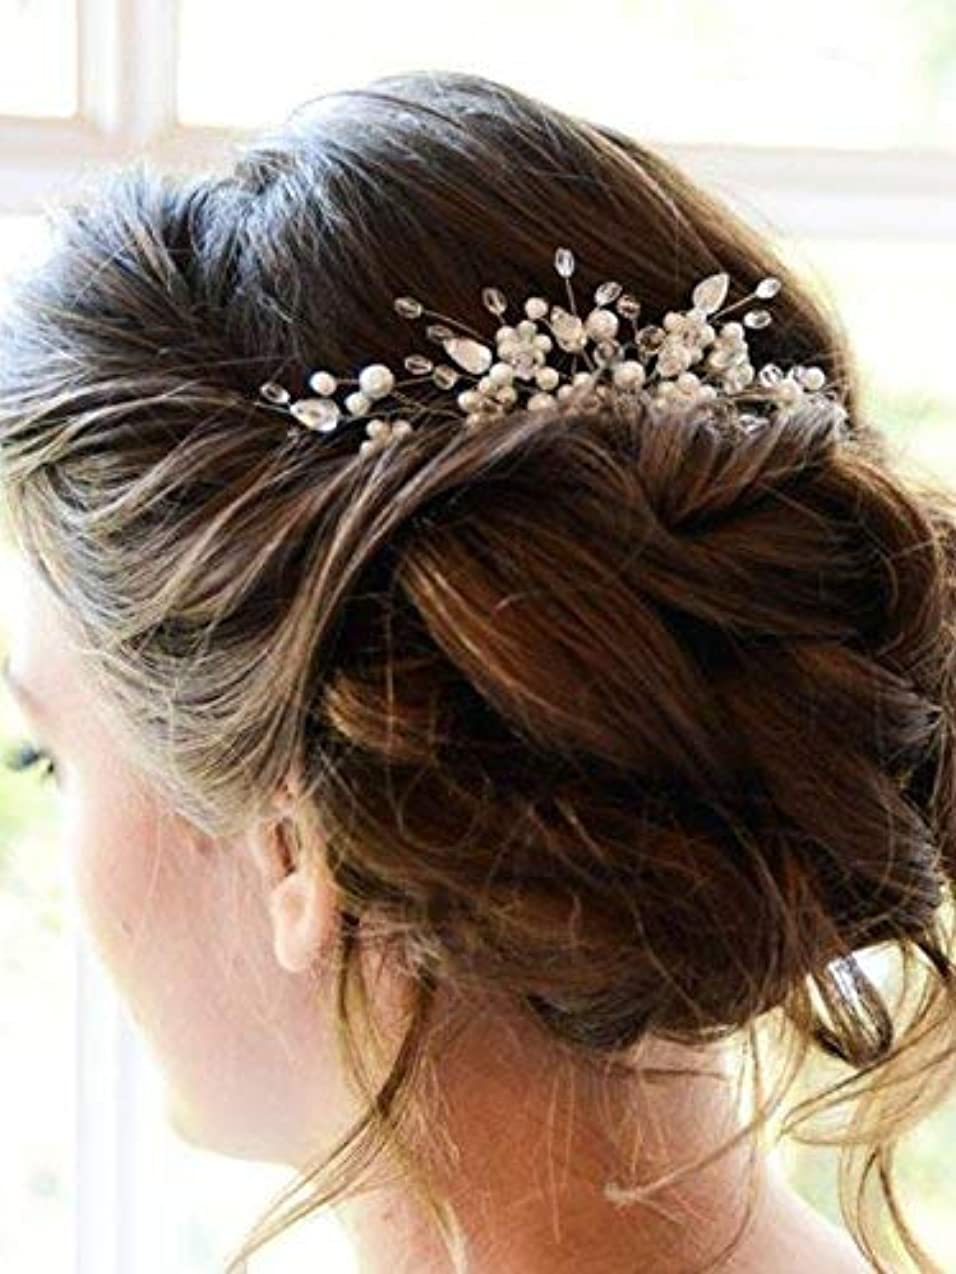 フィドルマルコポーロ飢えMissgrace Bridal Vintage Hair Comb Bridal Headpiece Bridal Hair Piece Wedding Hair Piece Wedding Headpiece Wedding...